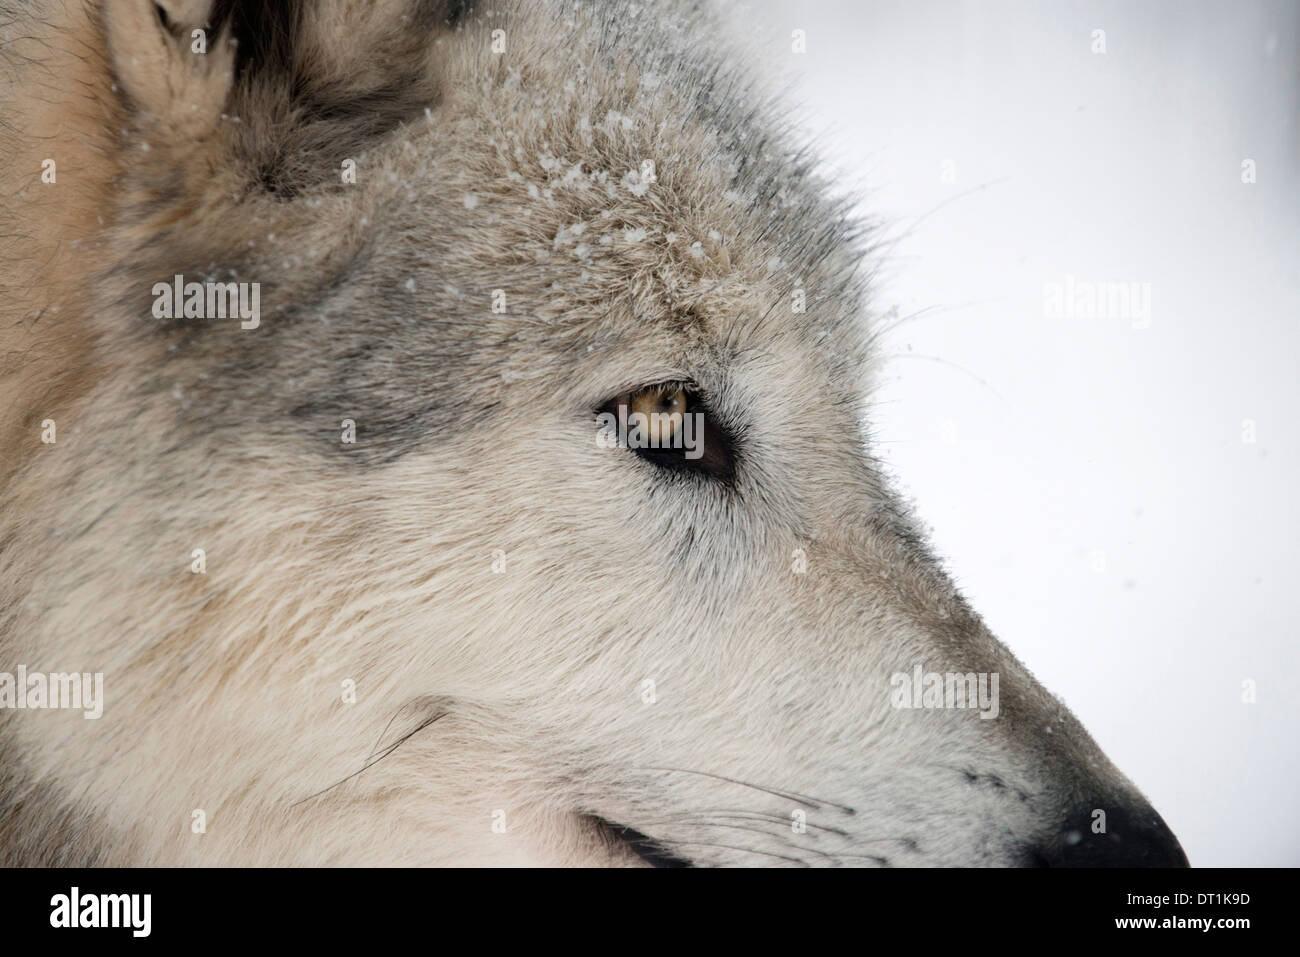 Close-up of face and snout of a North American Timber wolf (Canis lupus) in forest, Austria, Europe - Stock Image